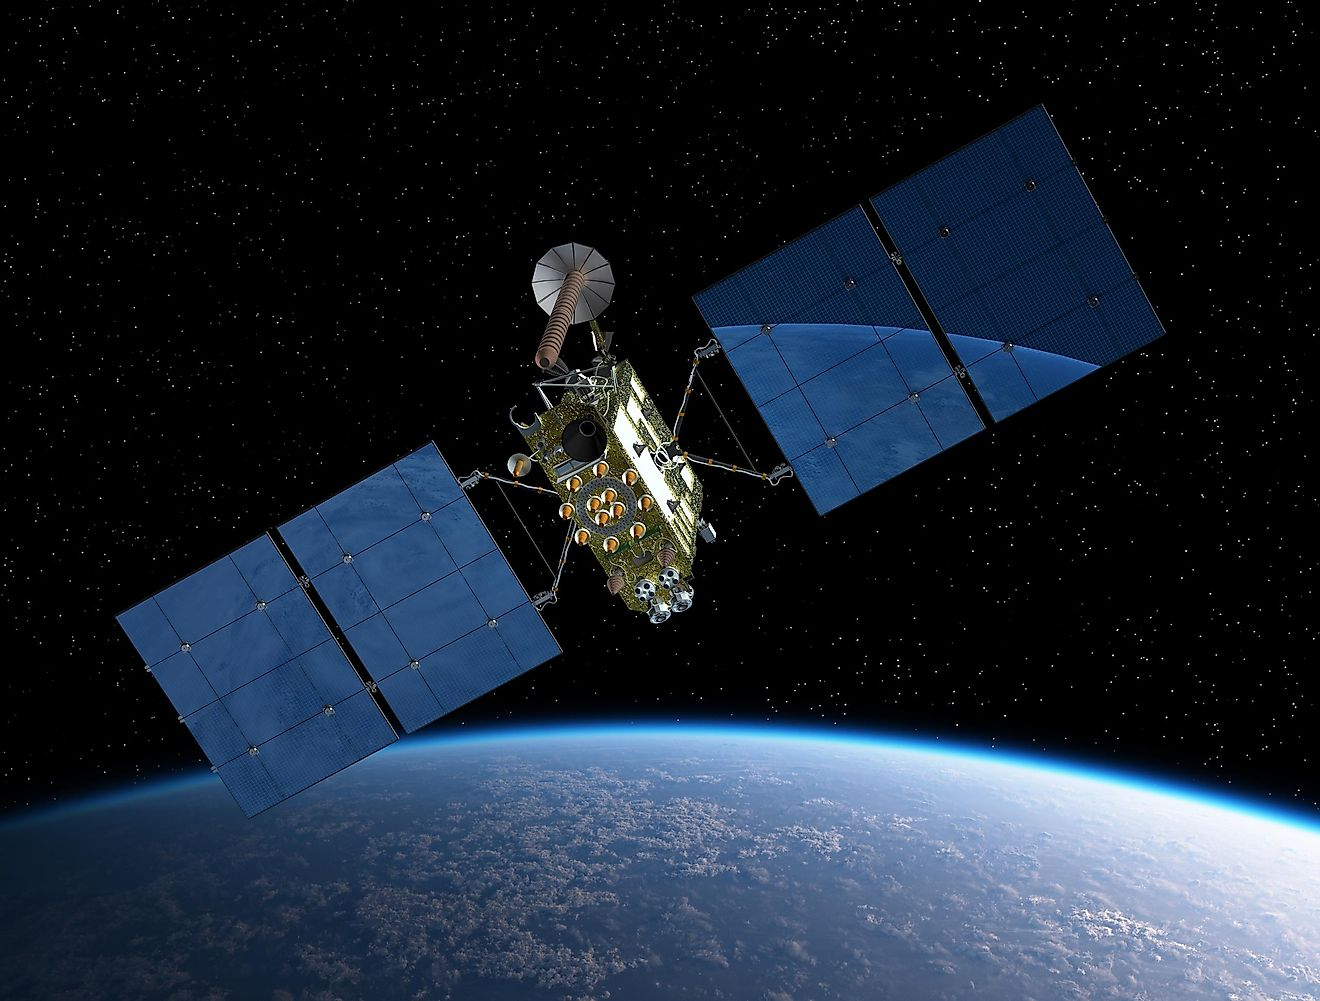 Where Do Artificial Satellites Orbit The Earth: In The Atmosphere Or Outer Space?